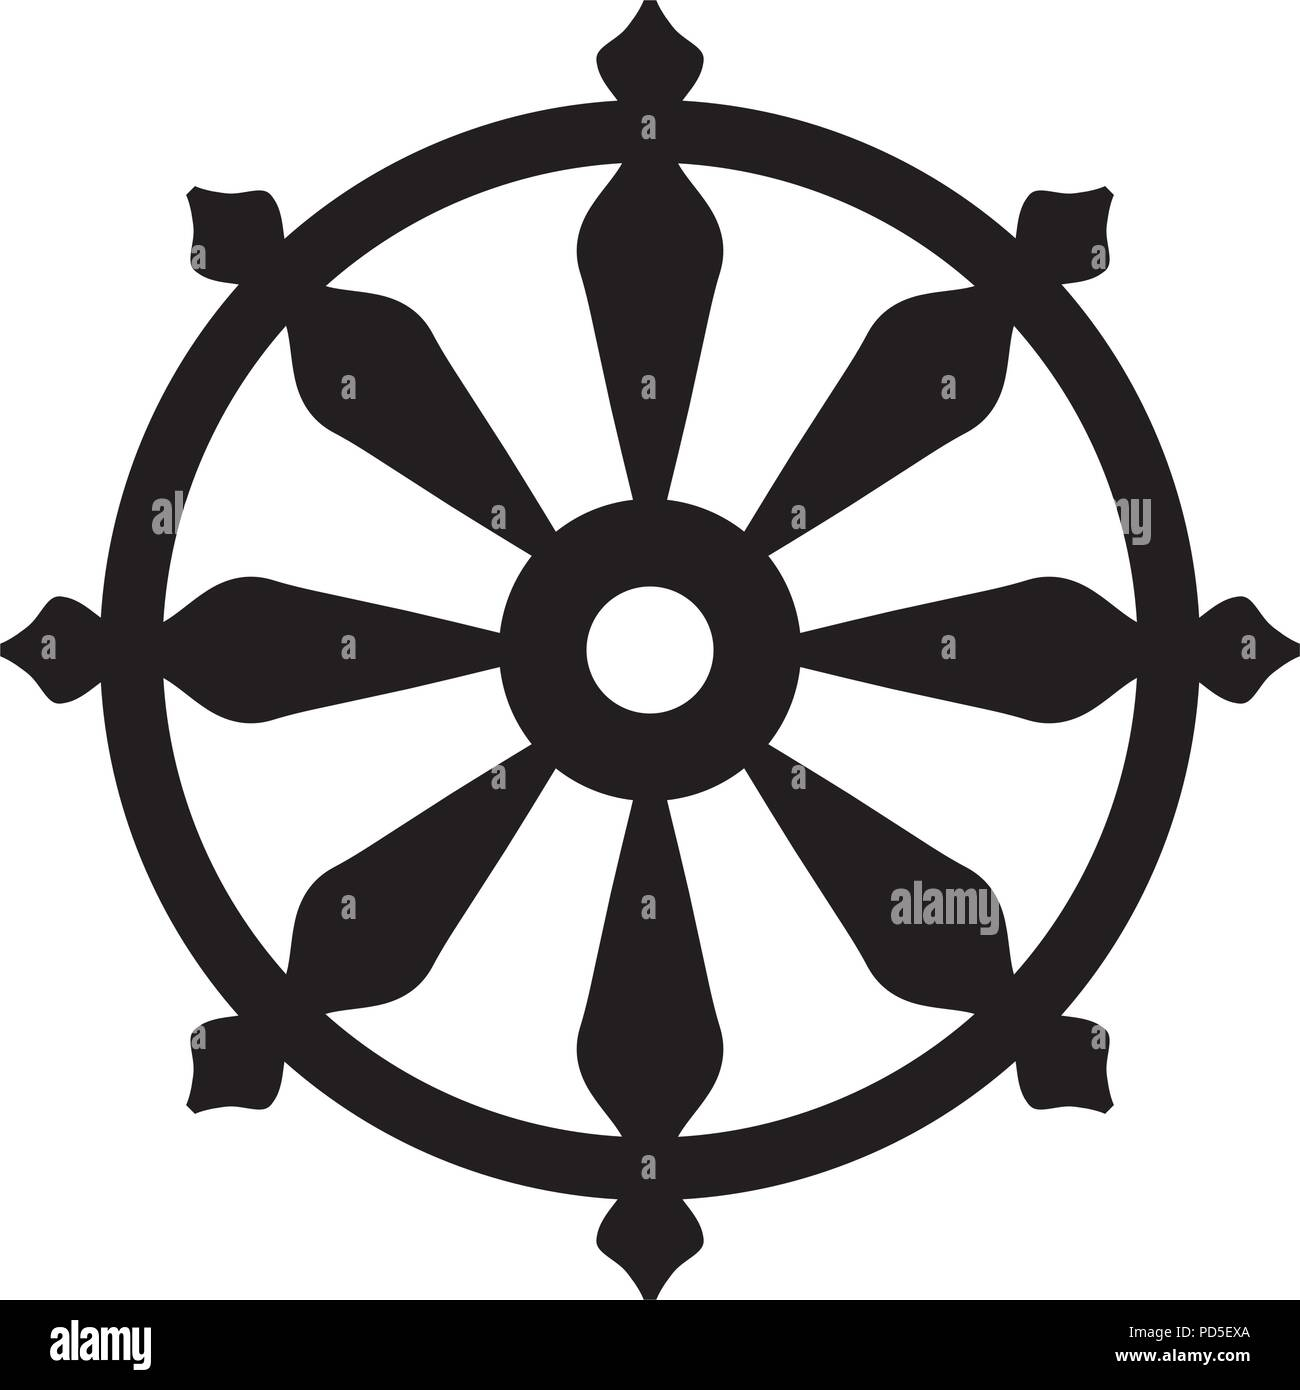 The Wheel of Samsara — Oriental Sacral Religious Symbol of Reincarnation: the cycle of death and rebirth to which life in the material world is bound. - Stock Vector